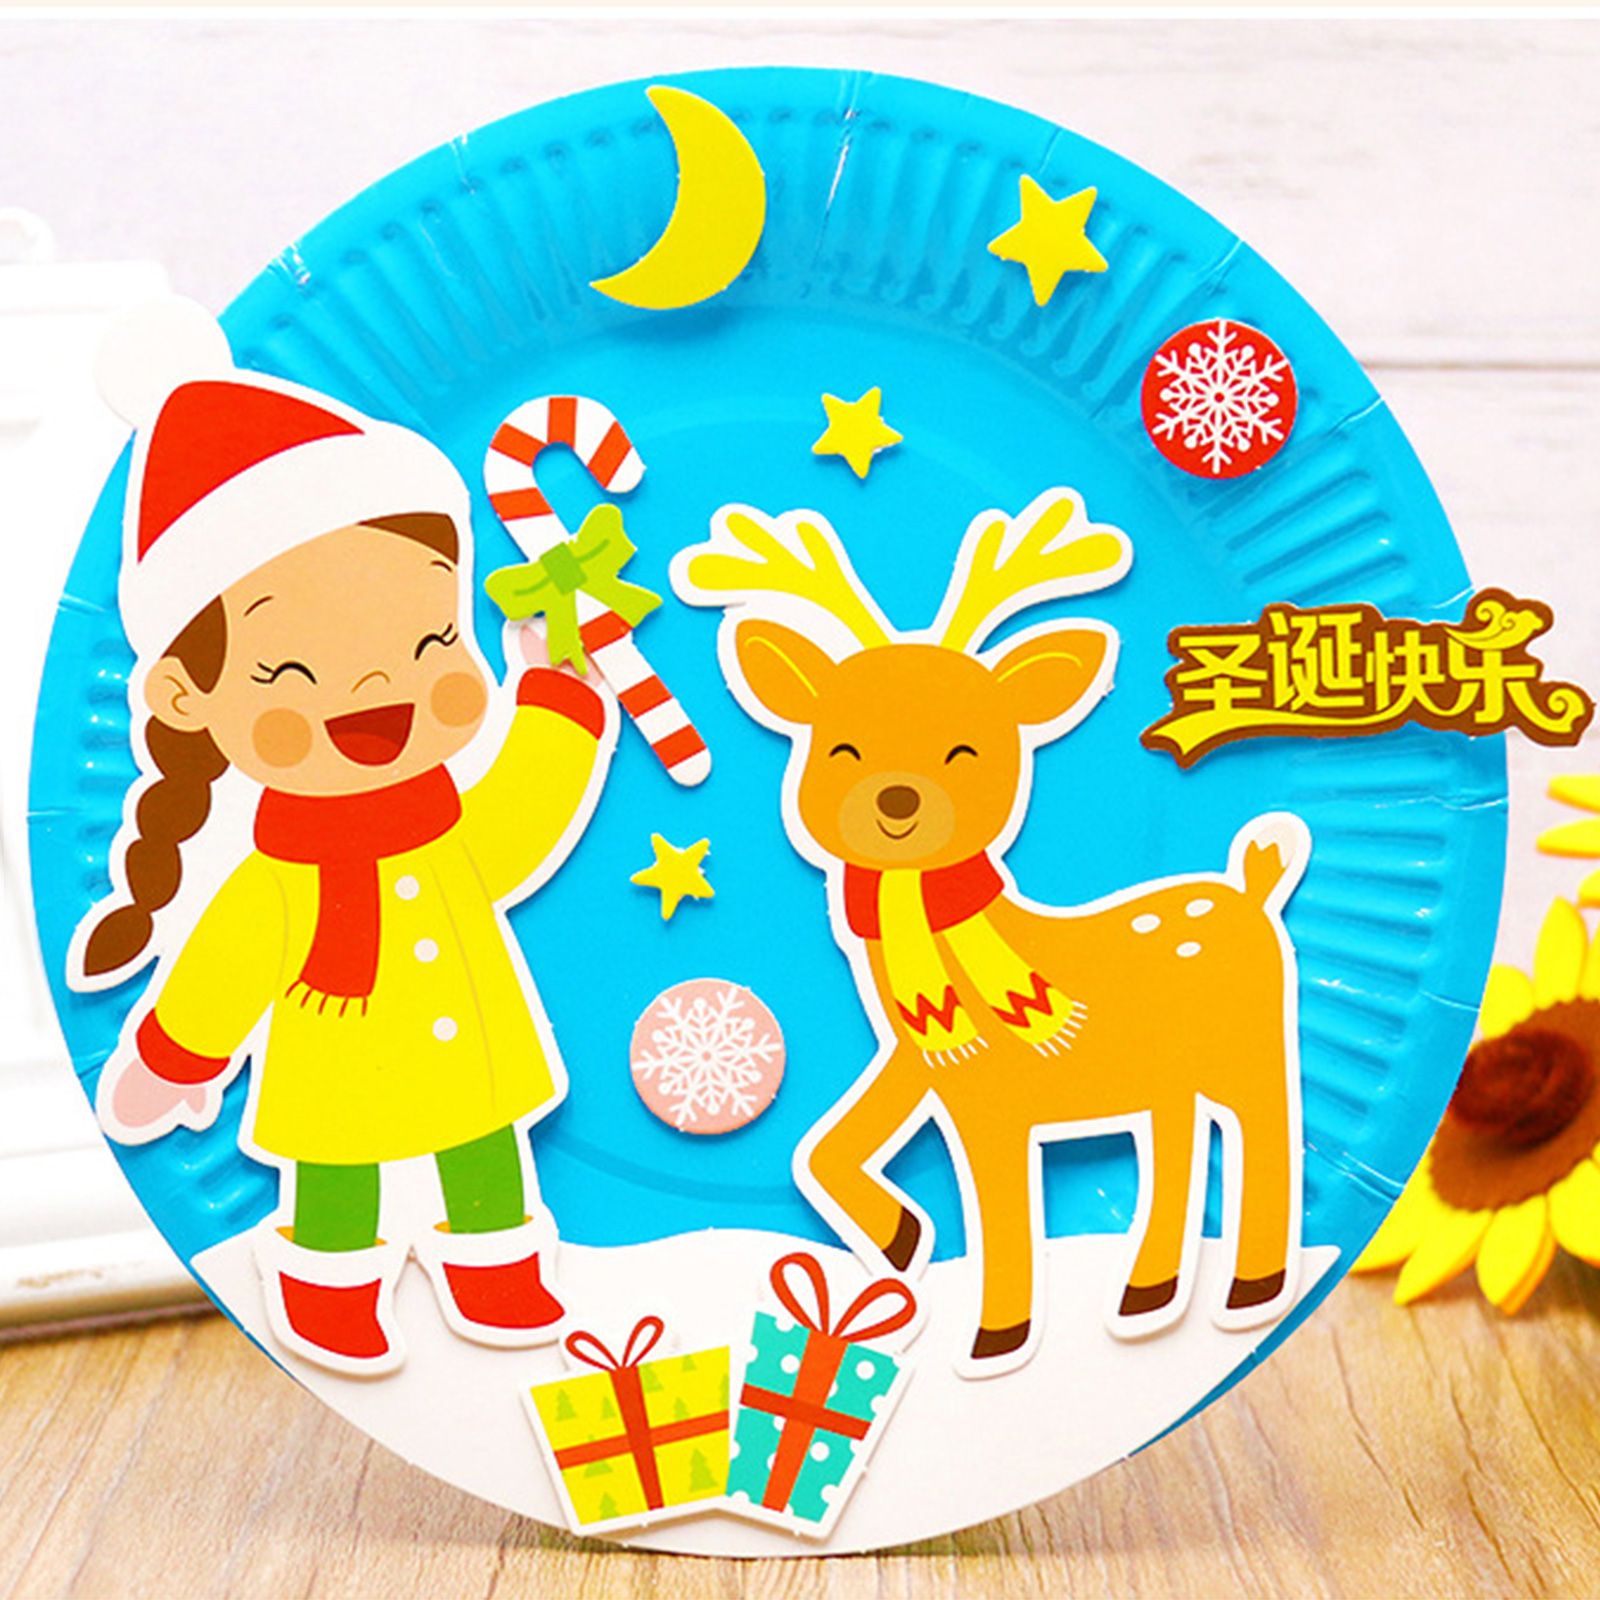 Paper Plate Santa Claus   Arty Crafty Kids   1600x1600